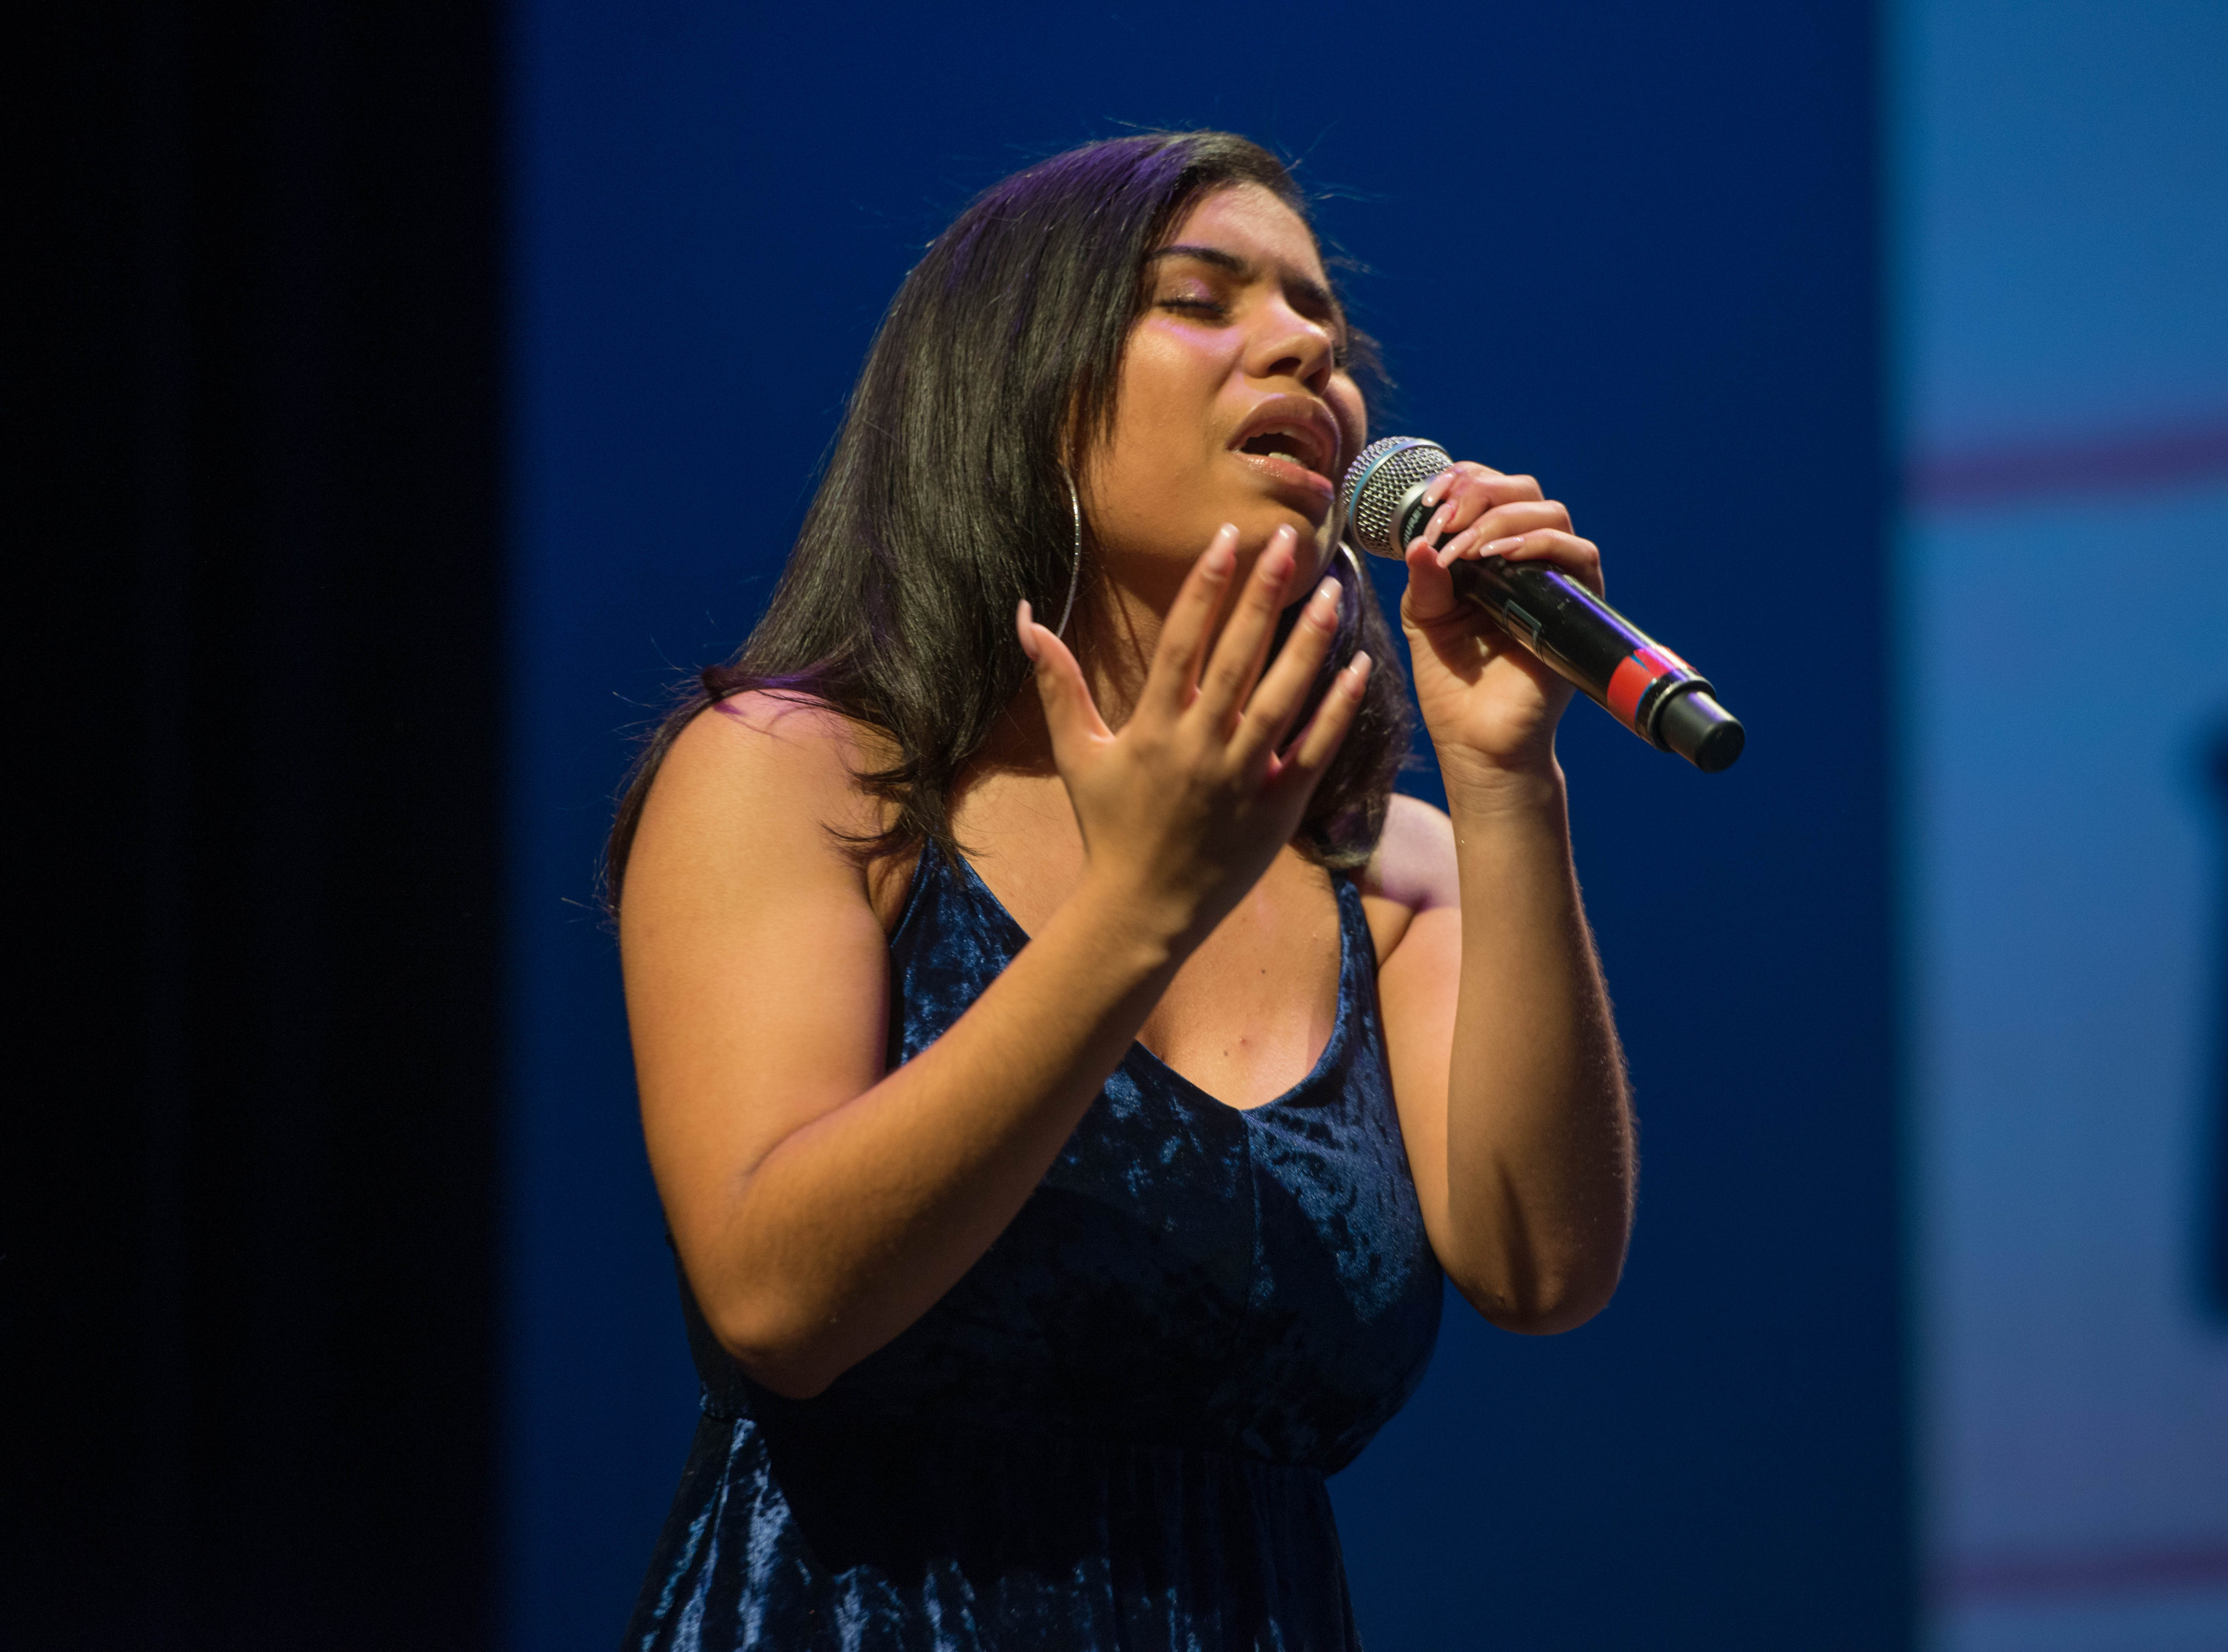 Patricia Parker (2019 Englewood Idol First Runner Up). The 2019 Englewood Idol was held at bergenPAC theater. The singing competition is open to any high school student who currently lives or goes to school in Englewood, NJ. This years winner was Genesis Capellan. 01/11/2019